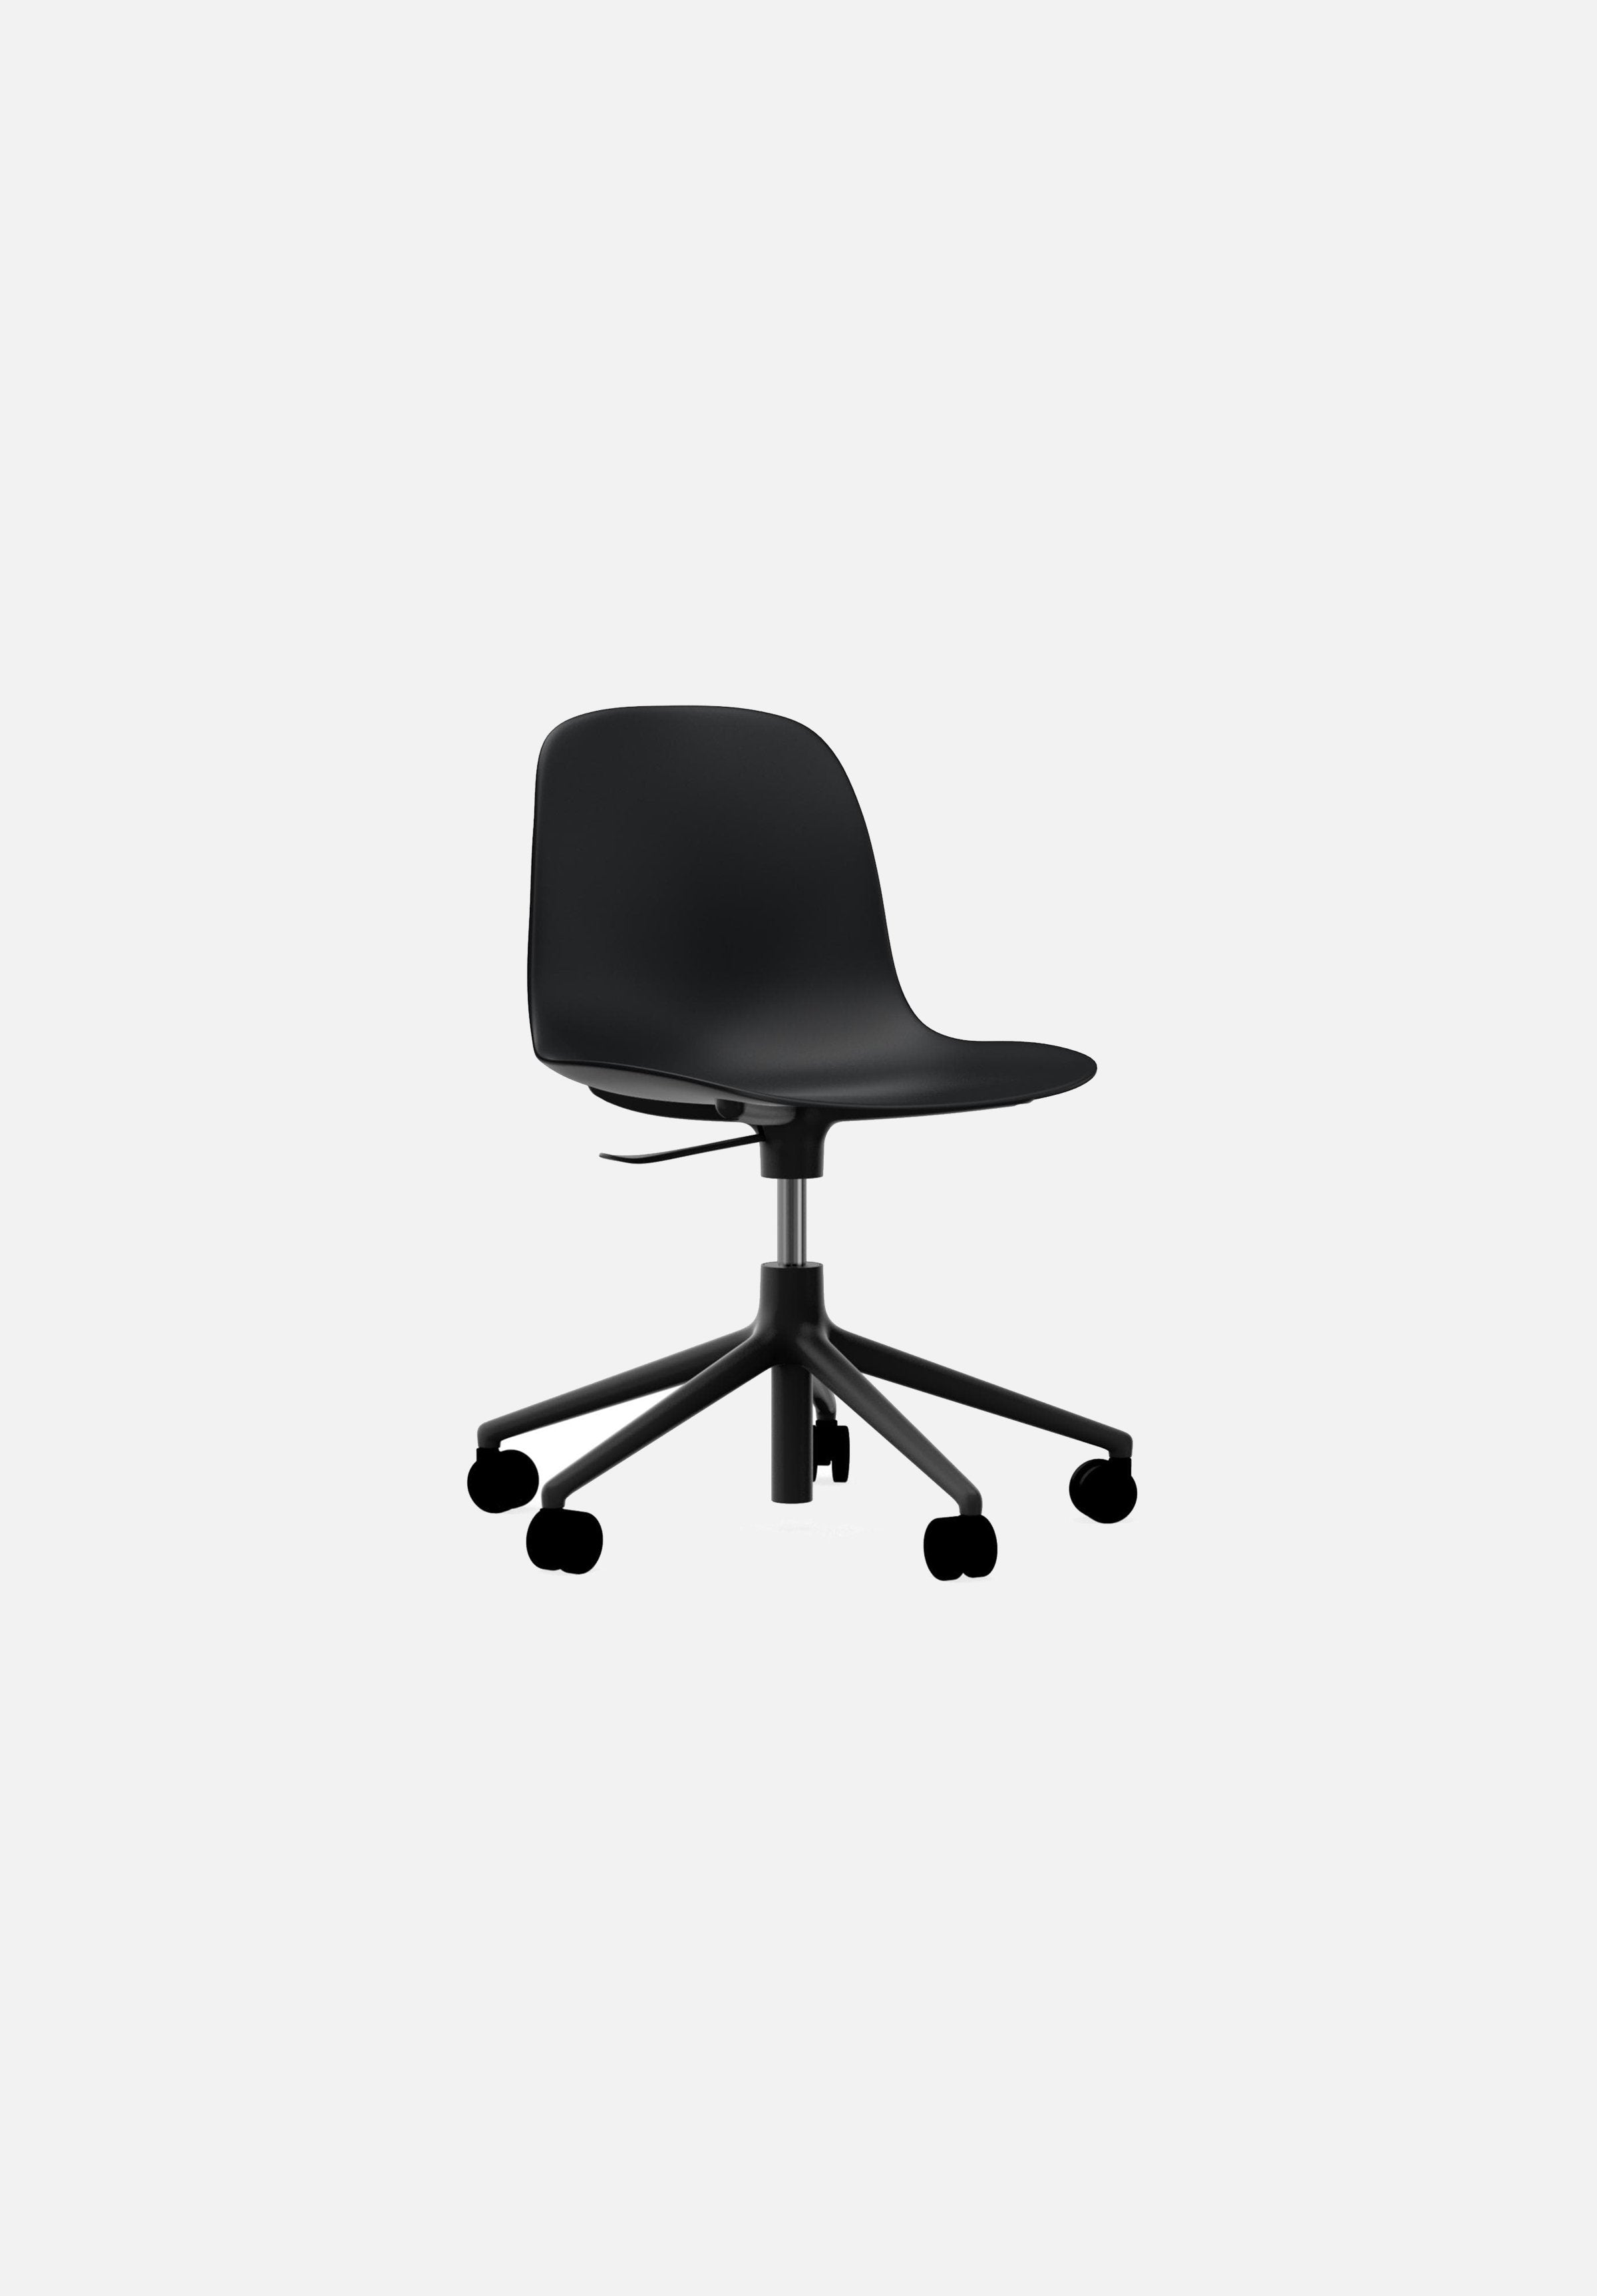 Form Chair — Swivel Gaslift-Simon Legald-Normann Copenhagen-Black-Black Aluminum-Average